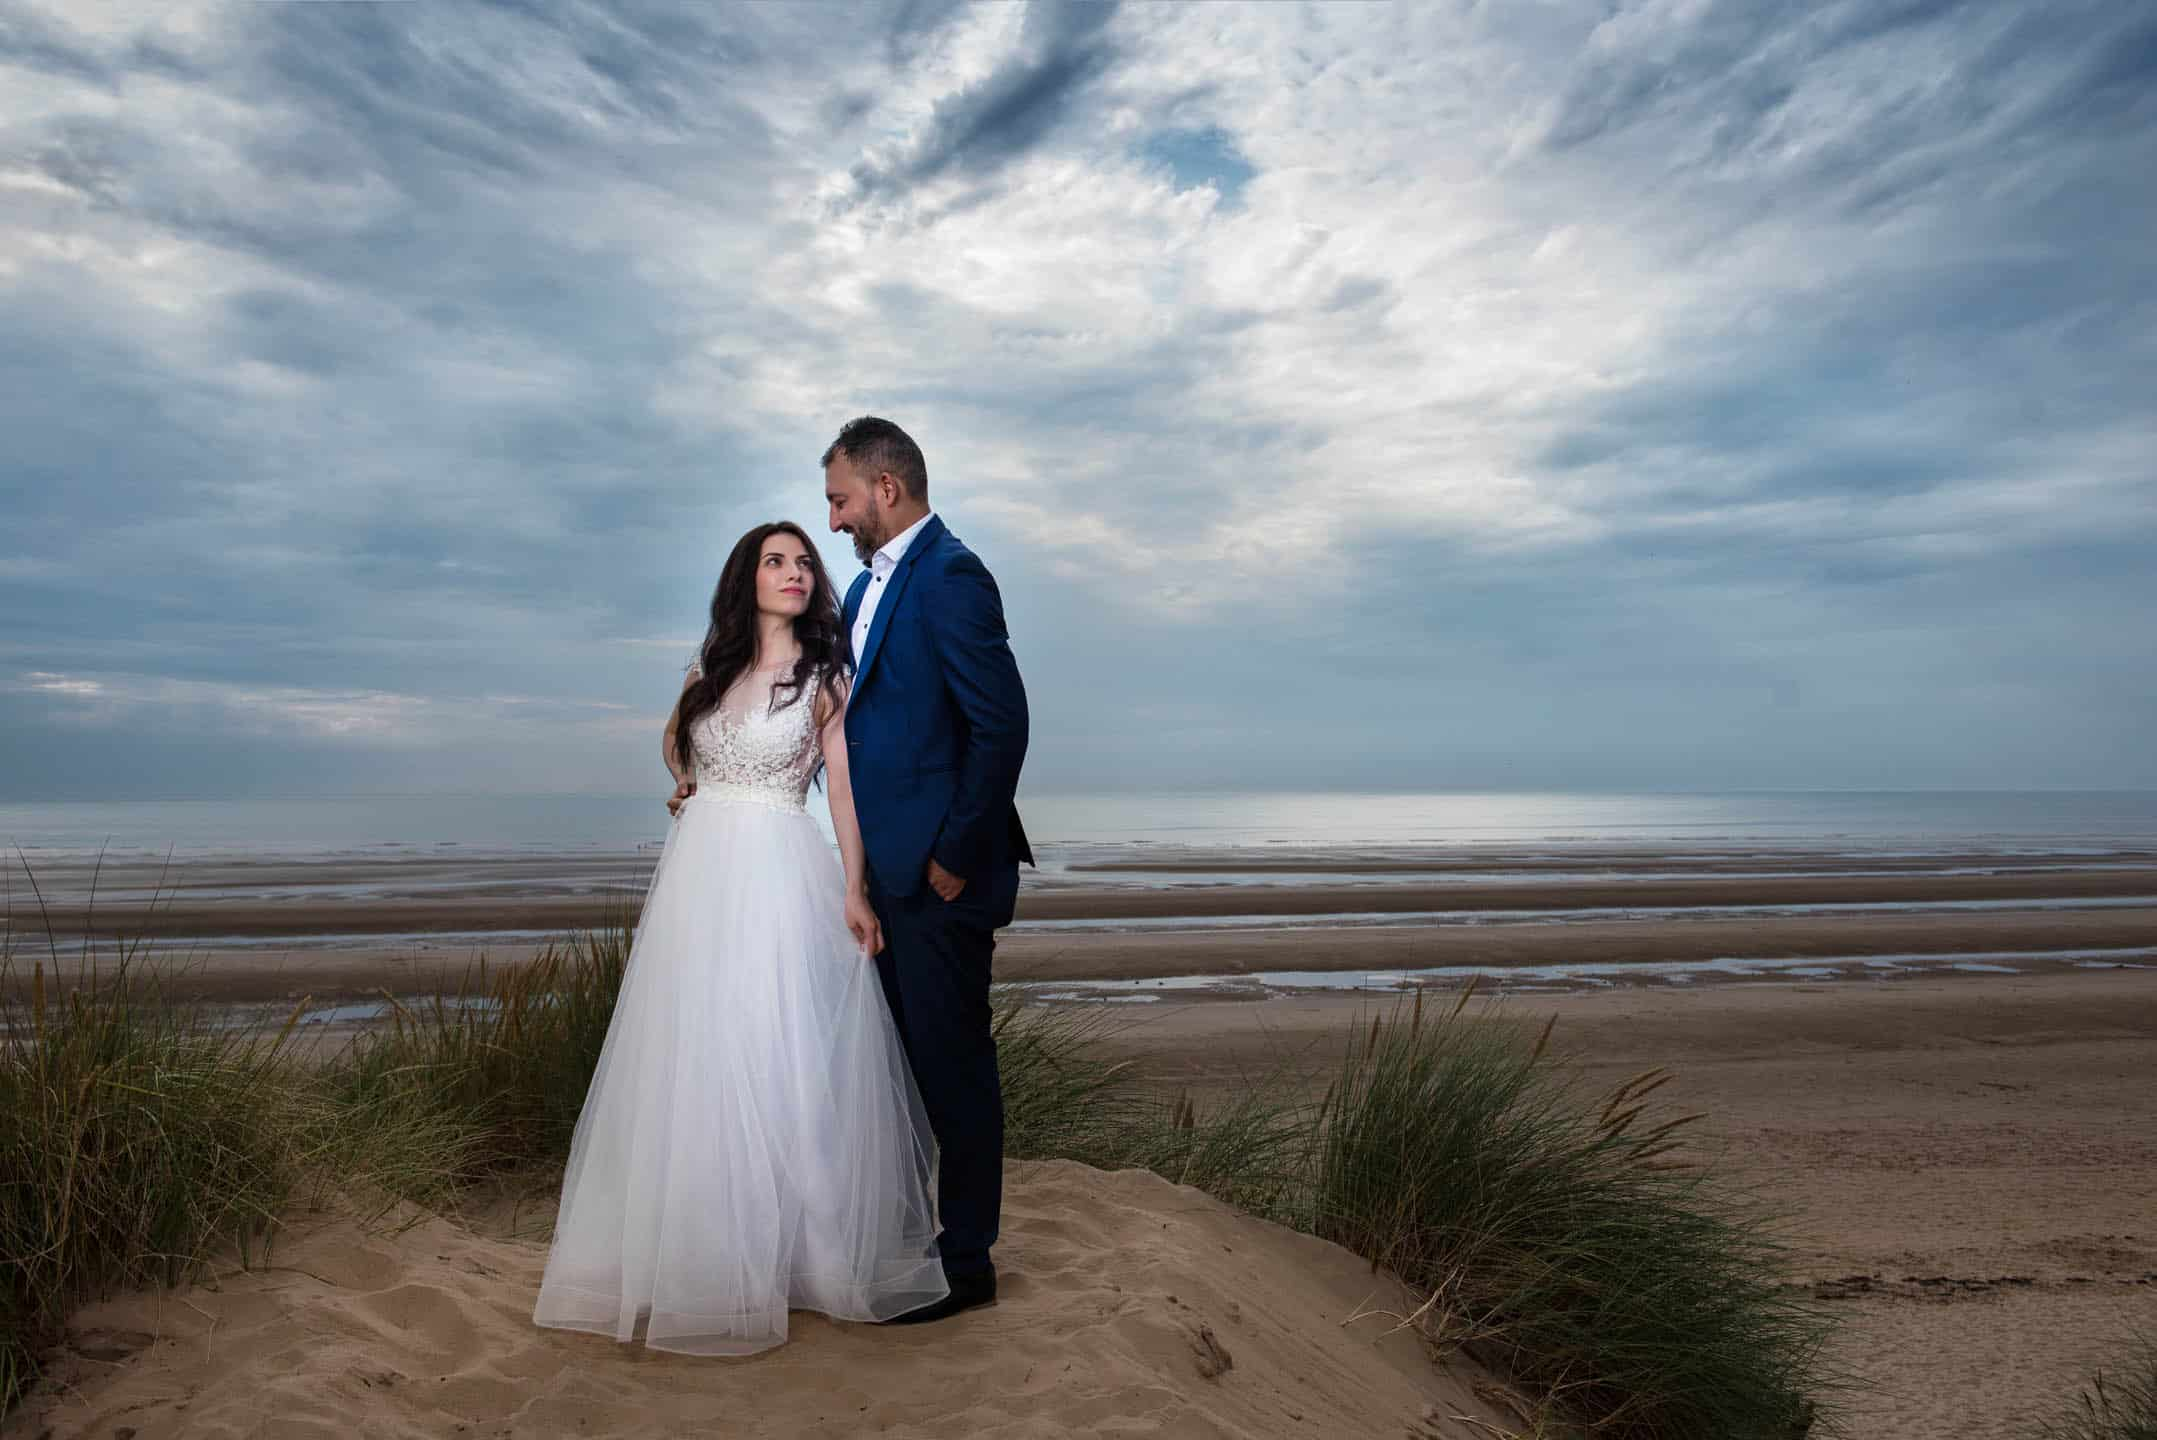 Manchester Wedding Photography at Formby